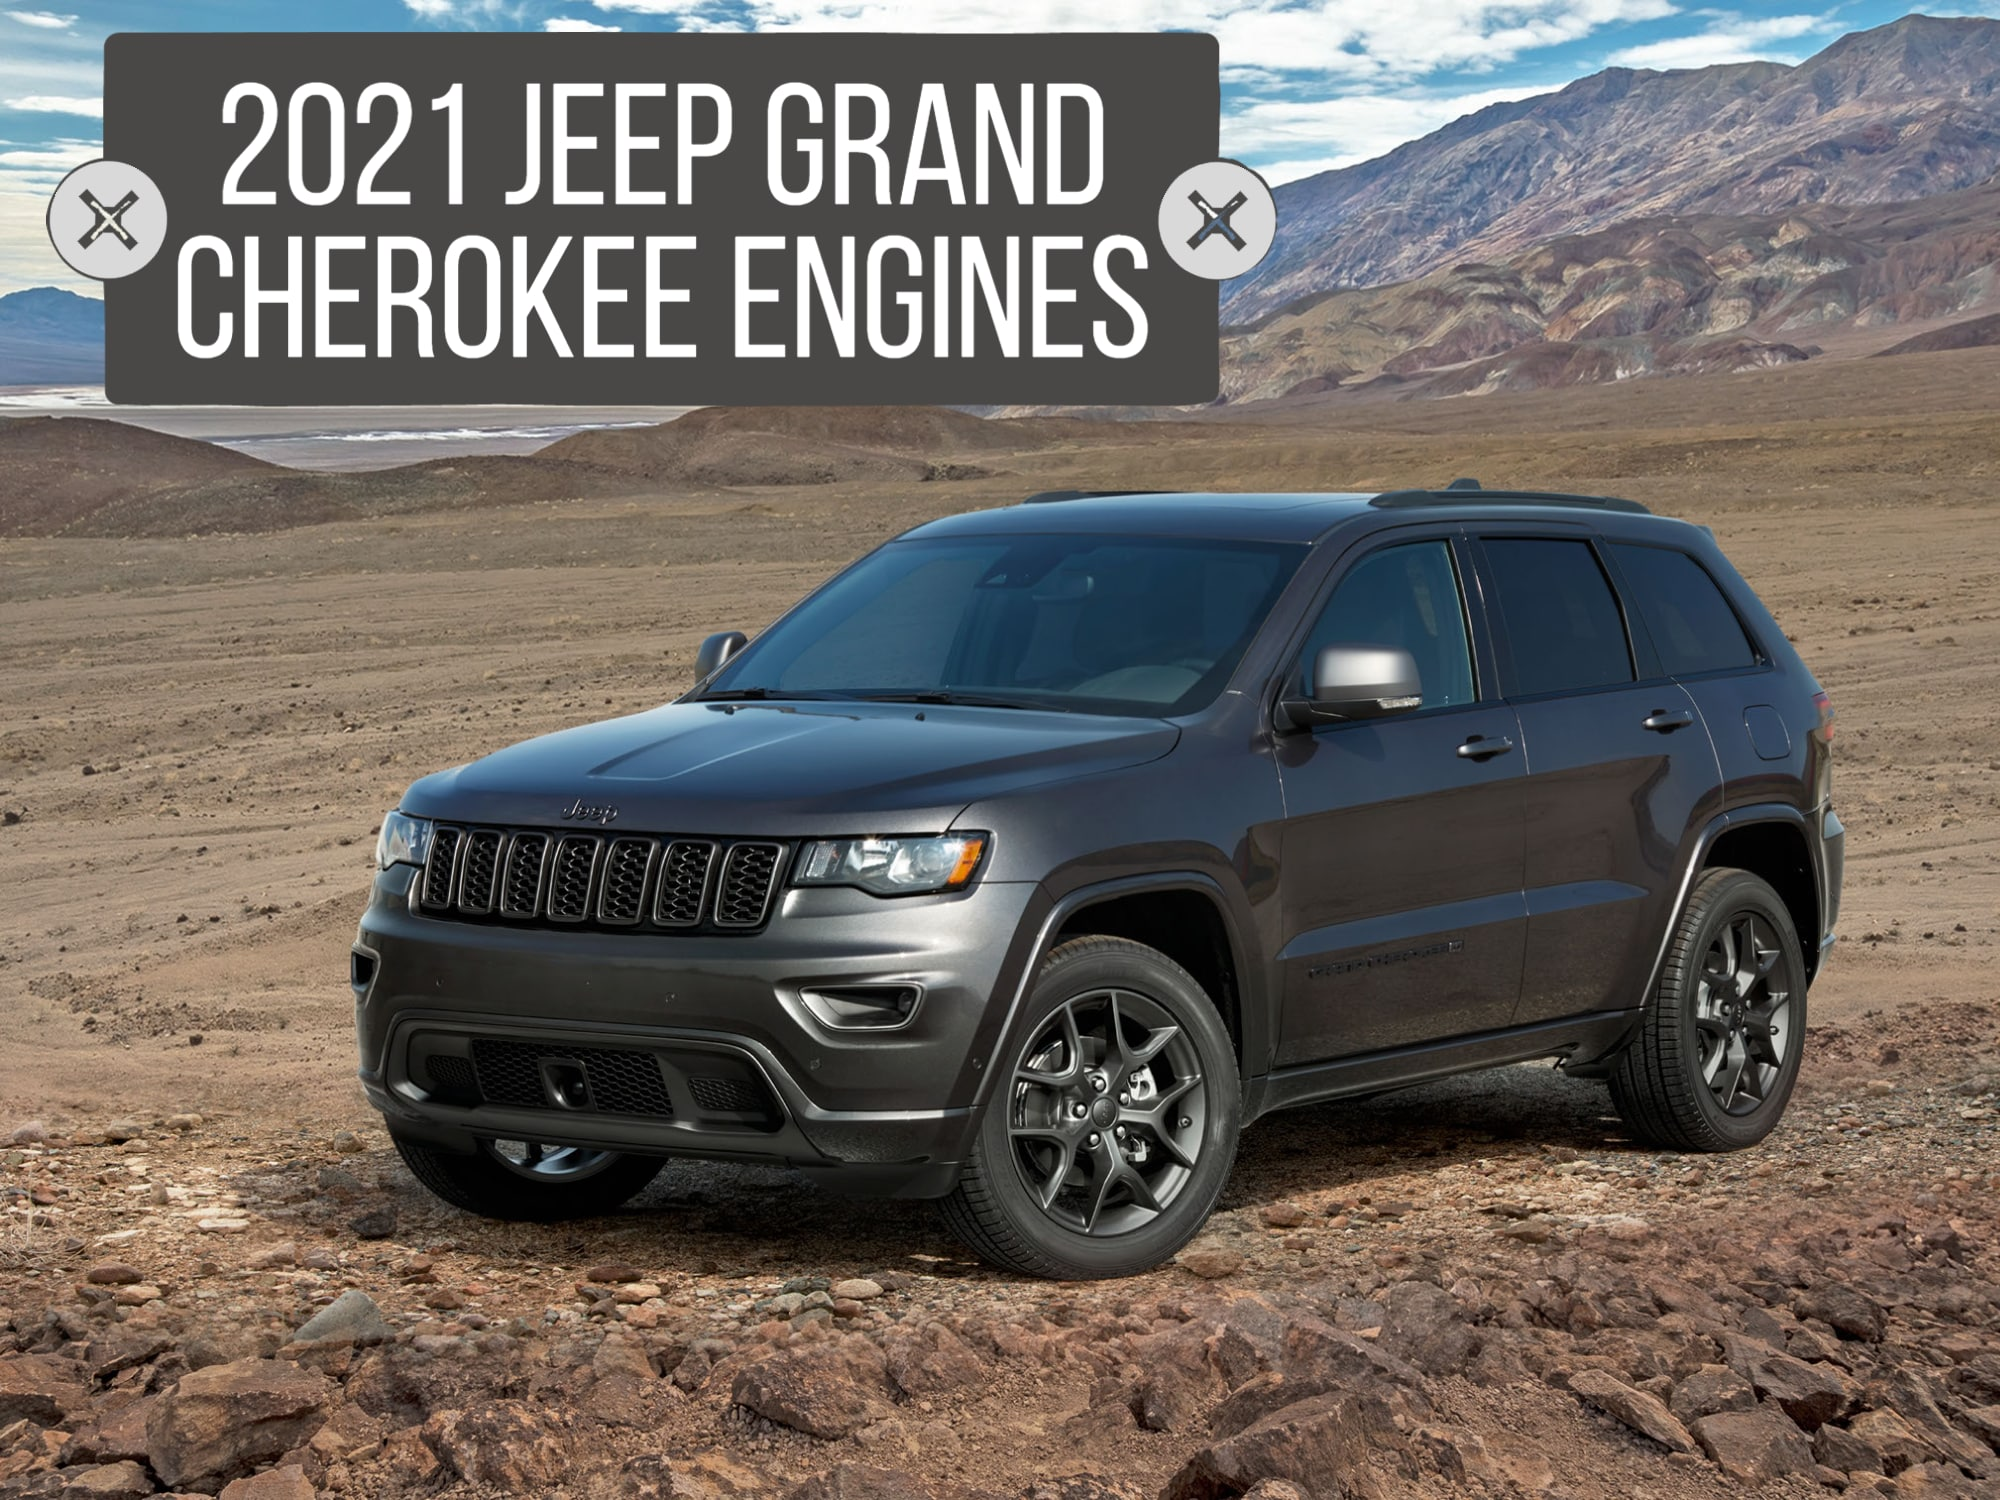 Front 3/4 View new Jeep Grand Cherokee 80th anniversary edition